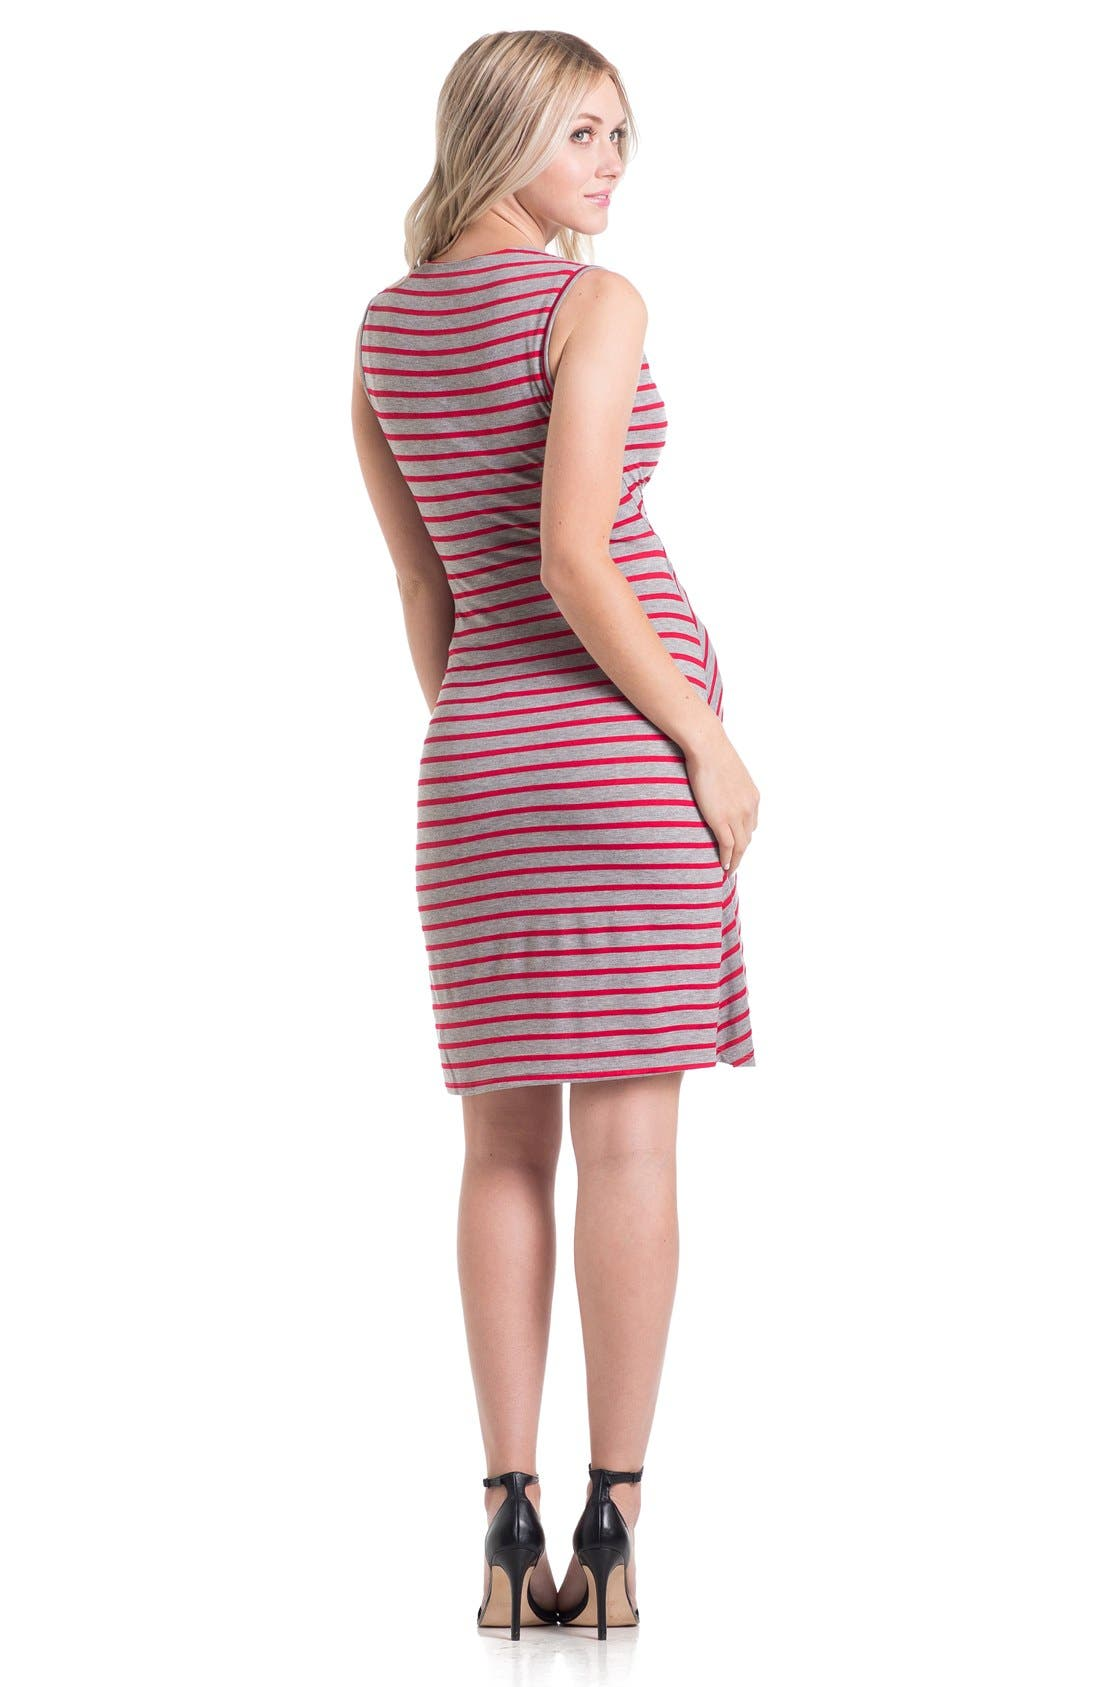 'Brynley' Surplice Maternity Dress,                             Alternate thumbnail 2, color,                             061